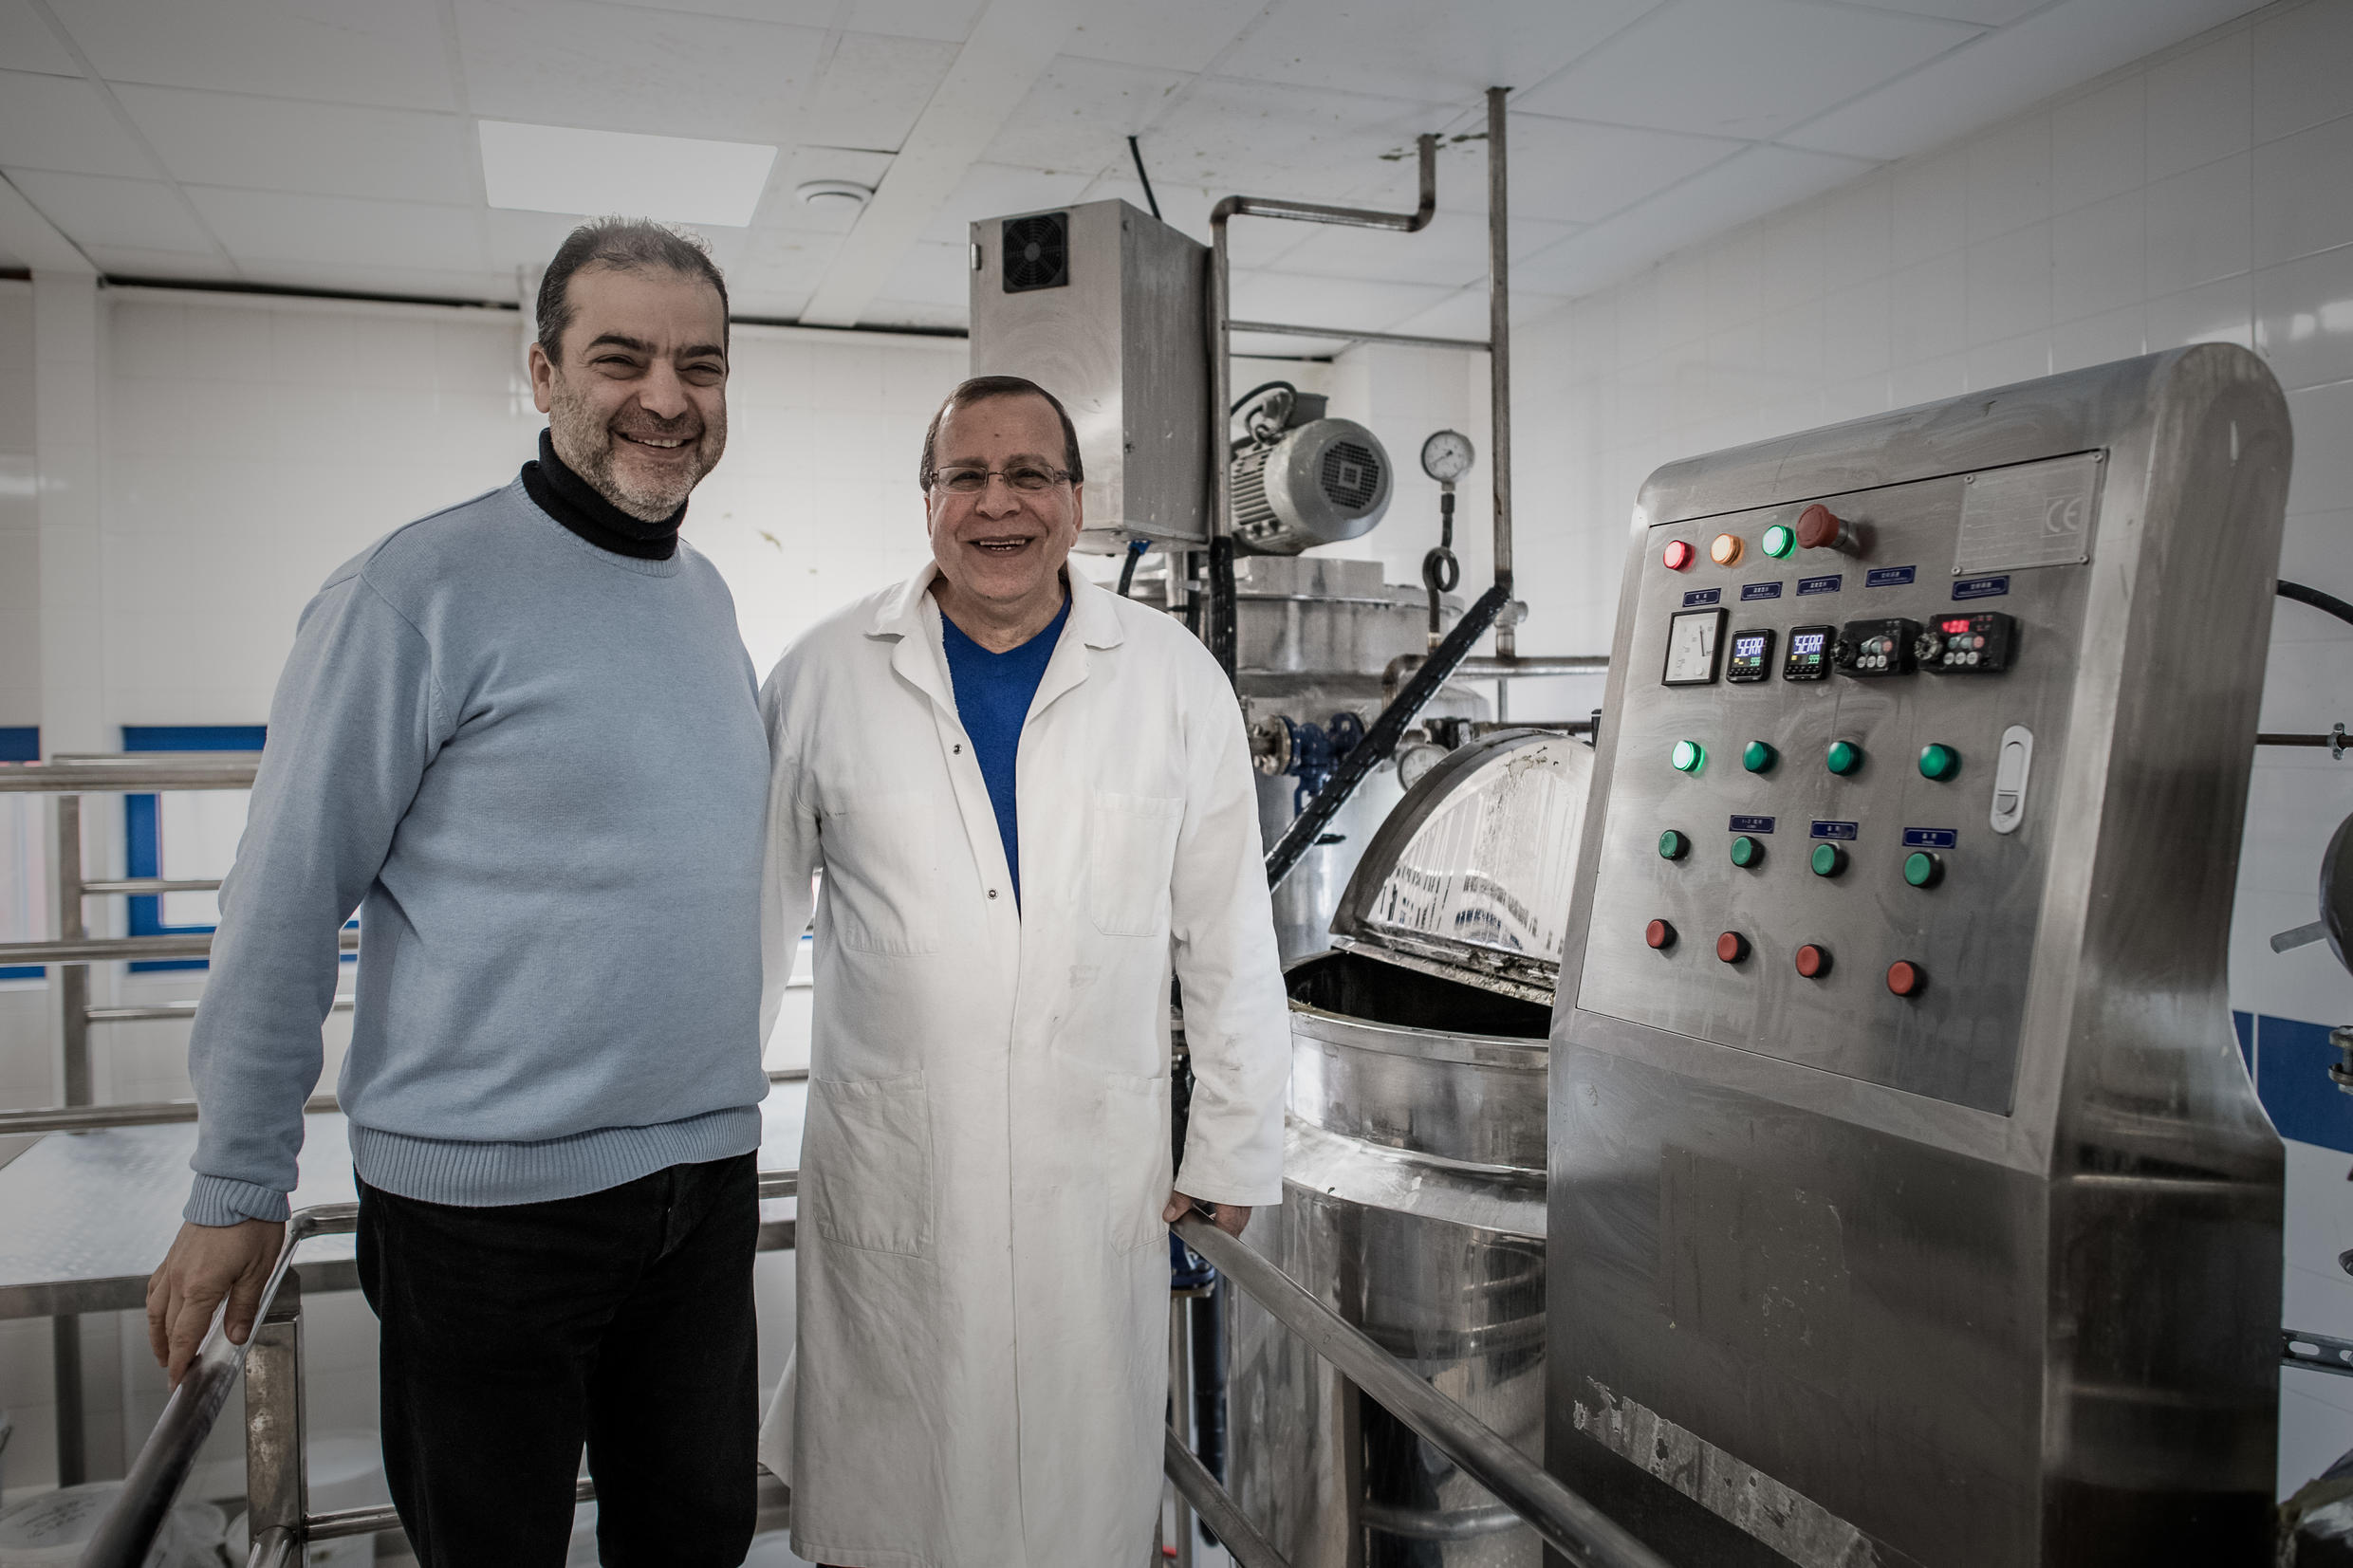 Samir Constantini (left) with his friend Hassan Harastani in the Alepia laboratory